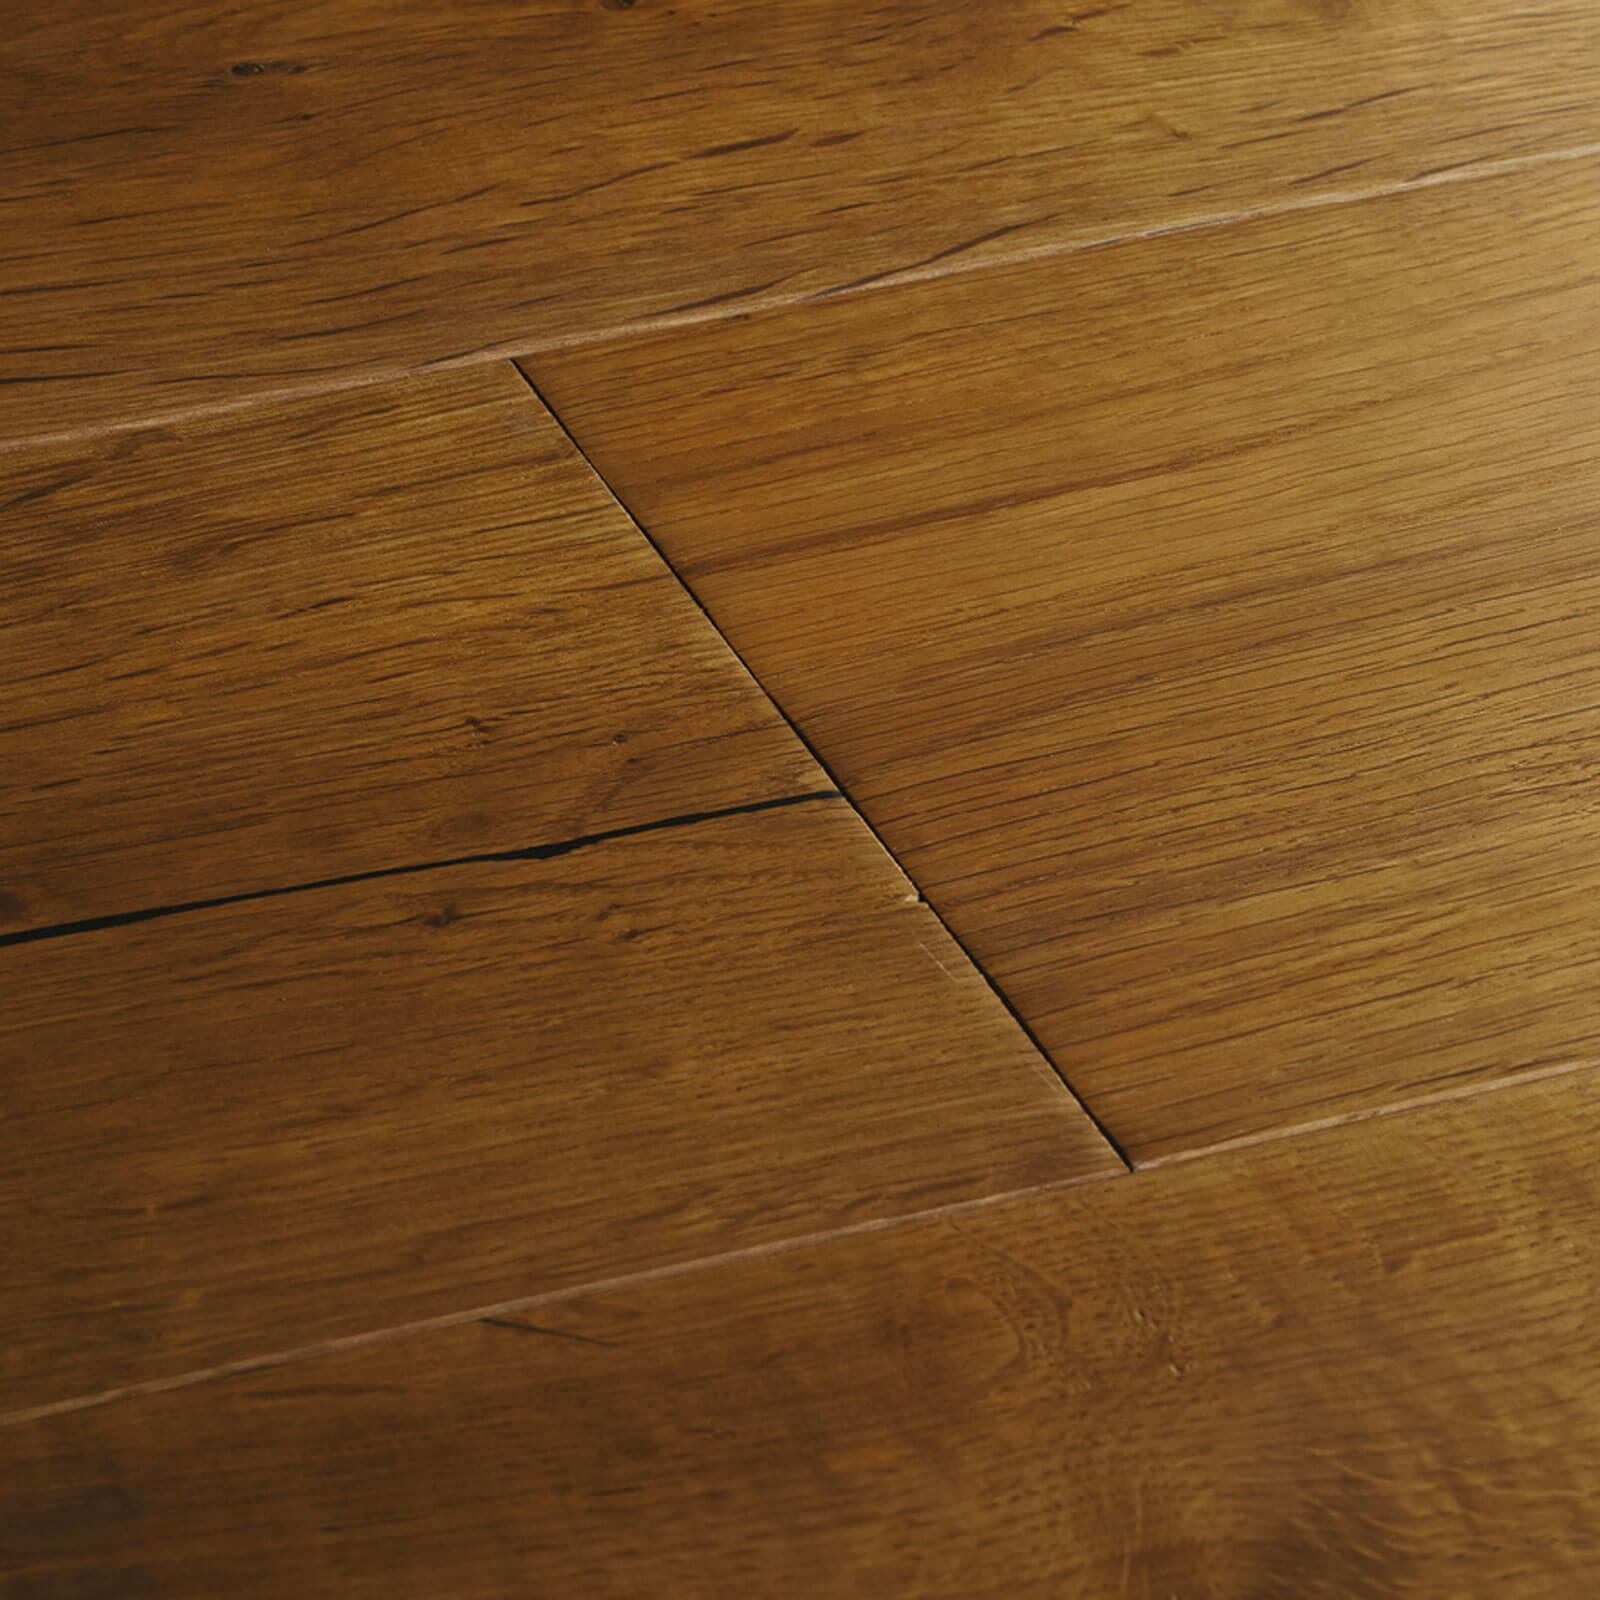 Woodpecker Berkeley Distressed Smoked Oak Oiled 38-BOS-003 Engineered Wood Flooring